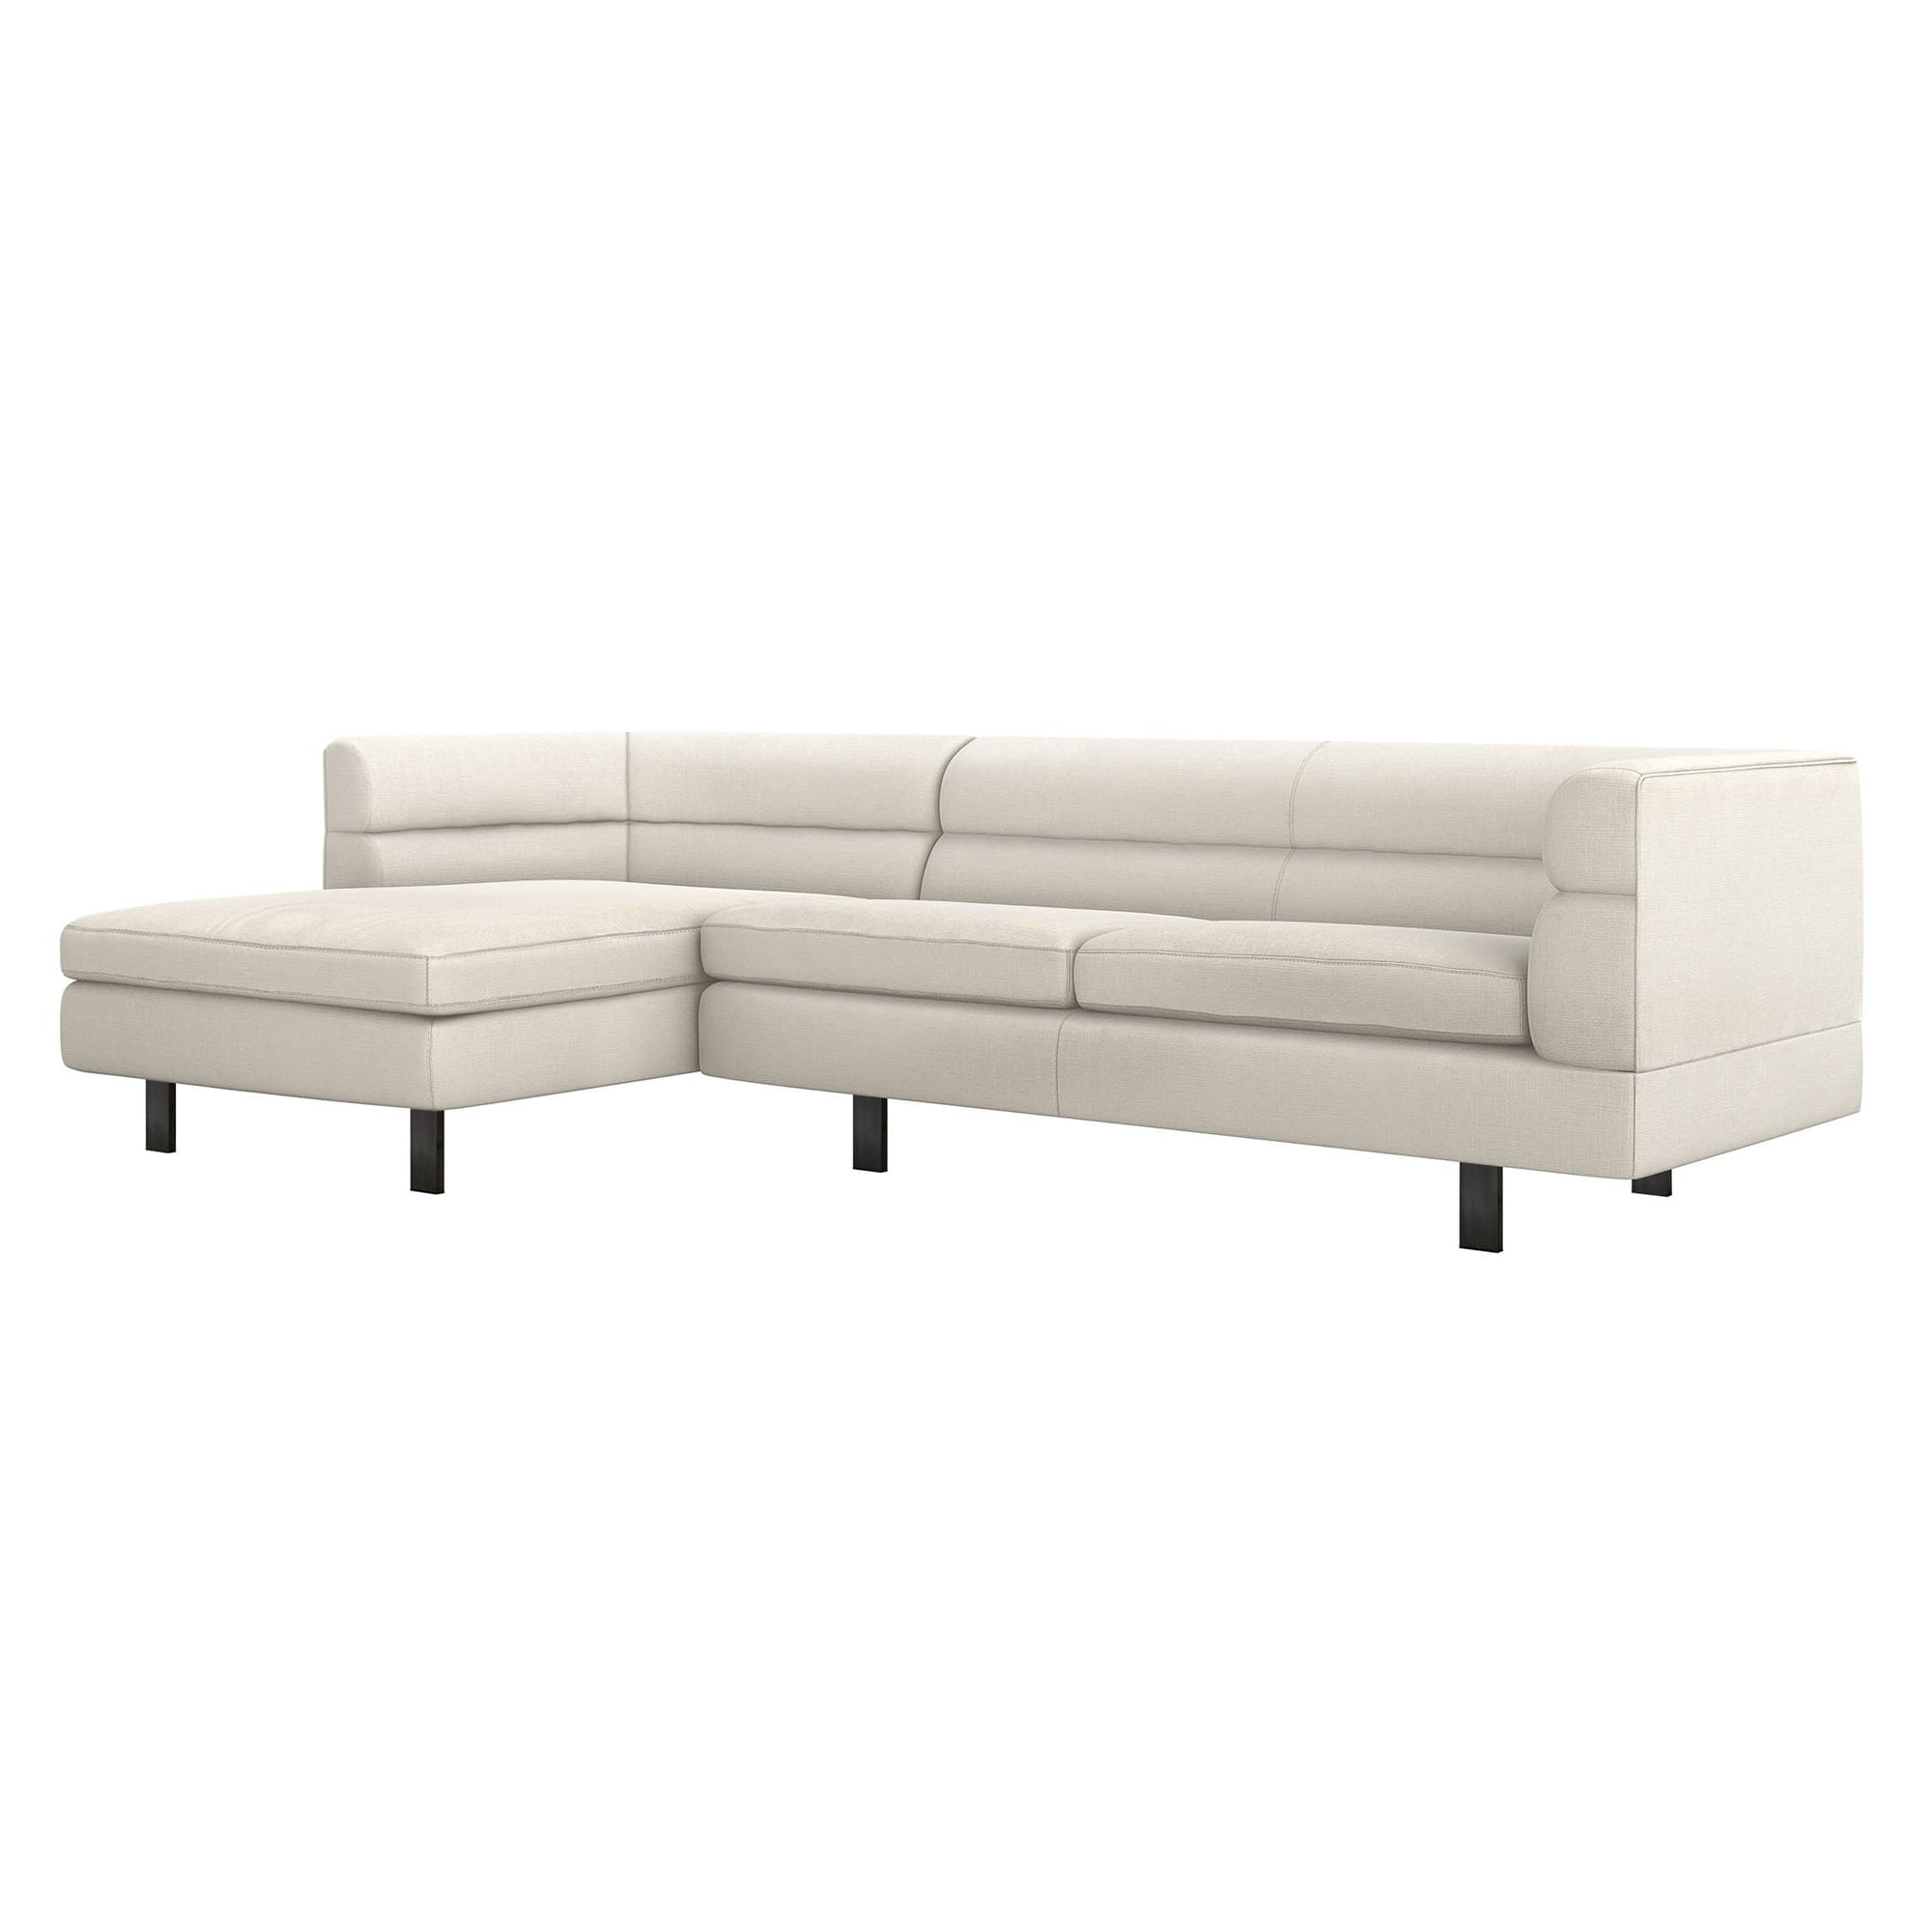 Interlude Home Interlude Home Ornette Left Chaise 2 Piece Sectional - Ivory 199022-1